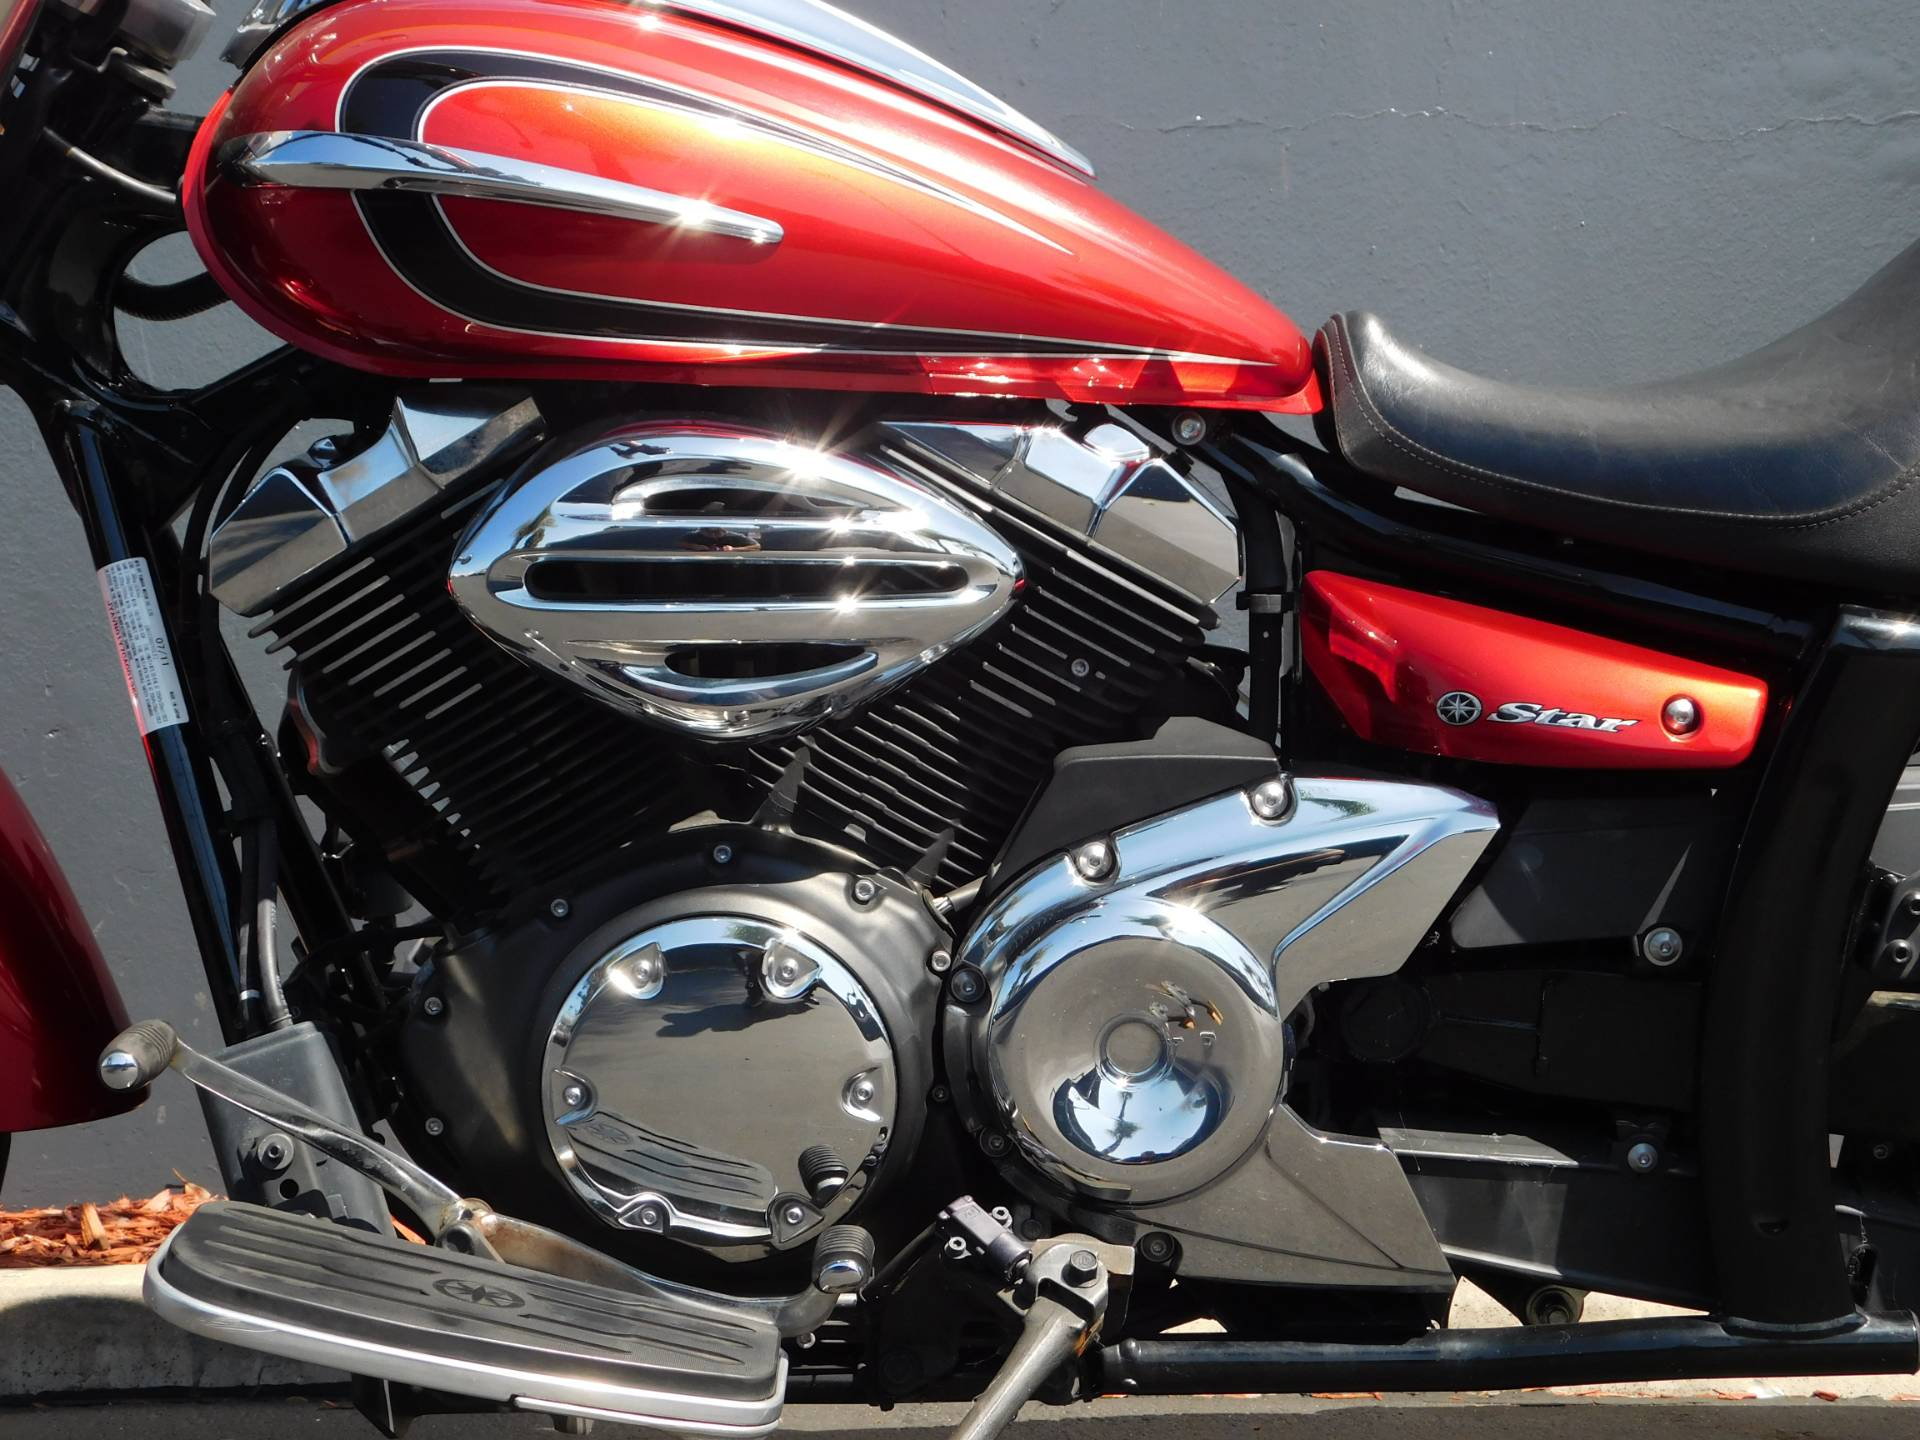 2012 Yamaha V Star 950 in Chula Vista, California - Photo 21